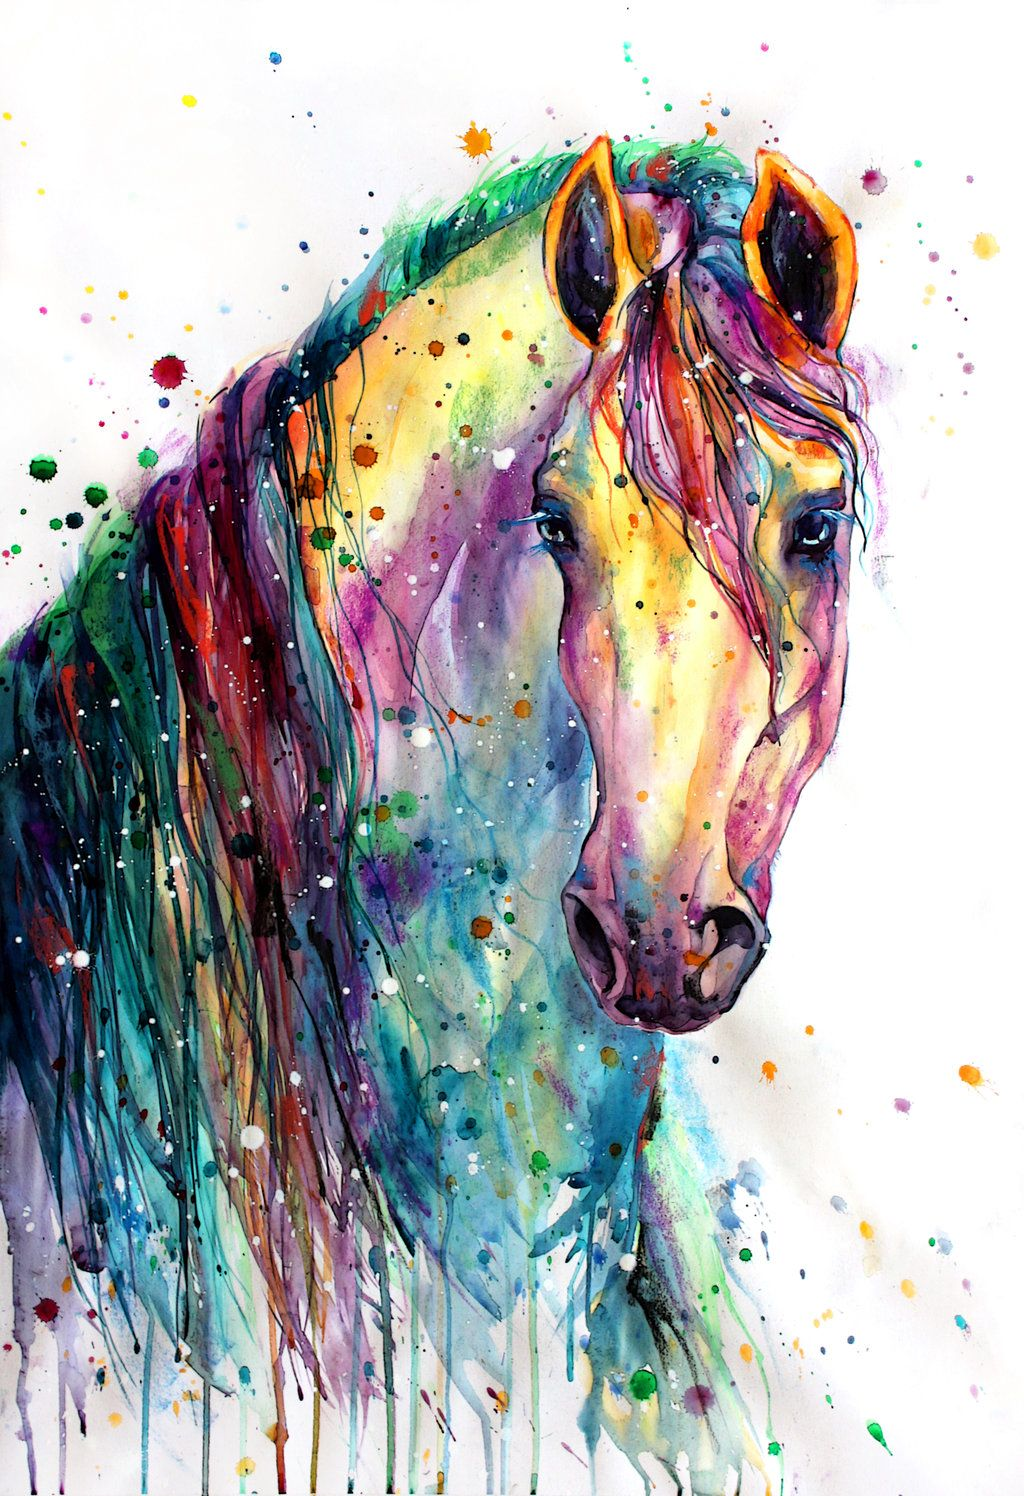 Rainbow Horsey2 By Elenashved Deviantart Com On Deviantart